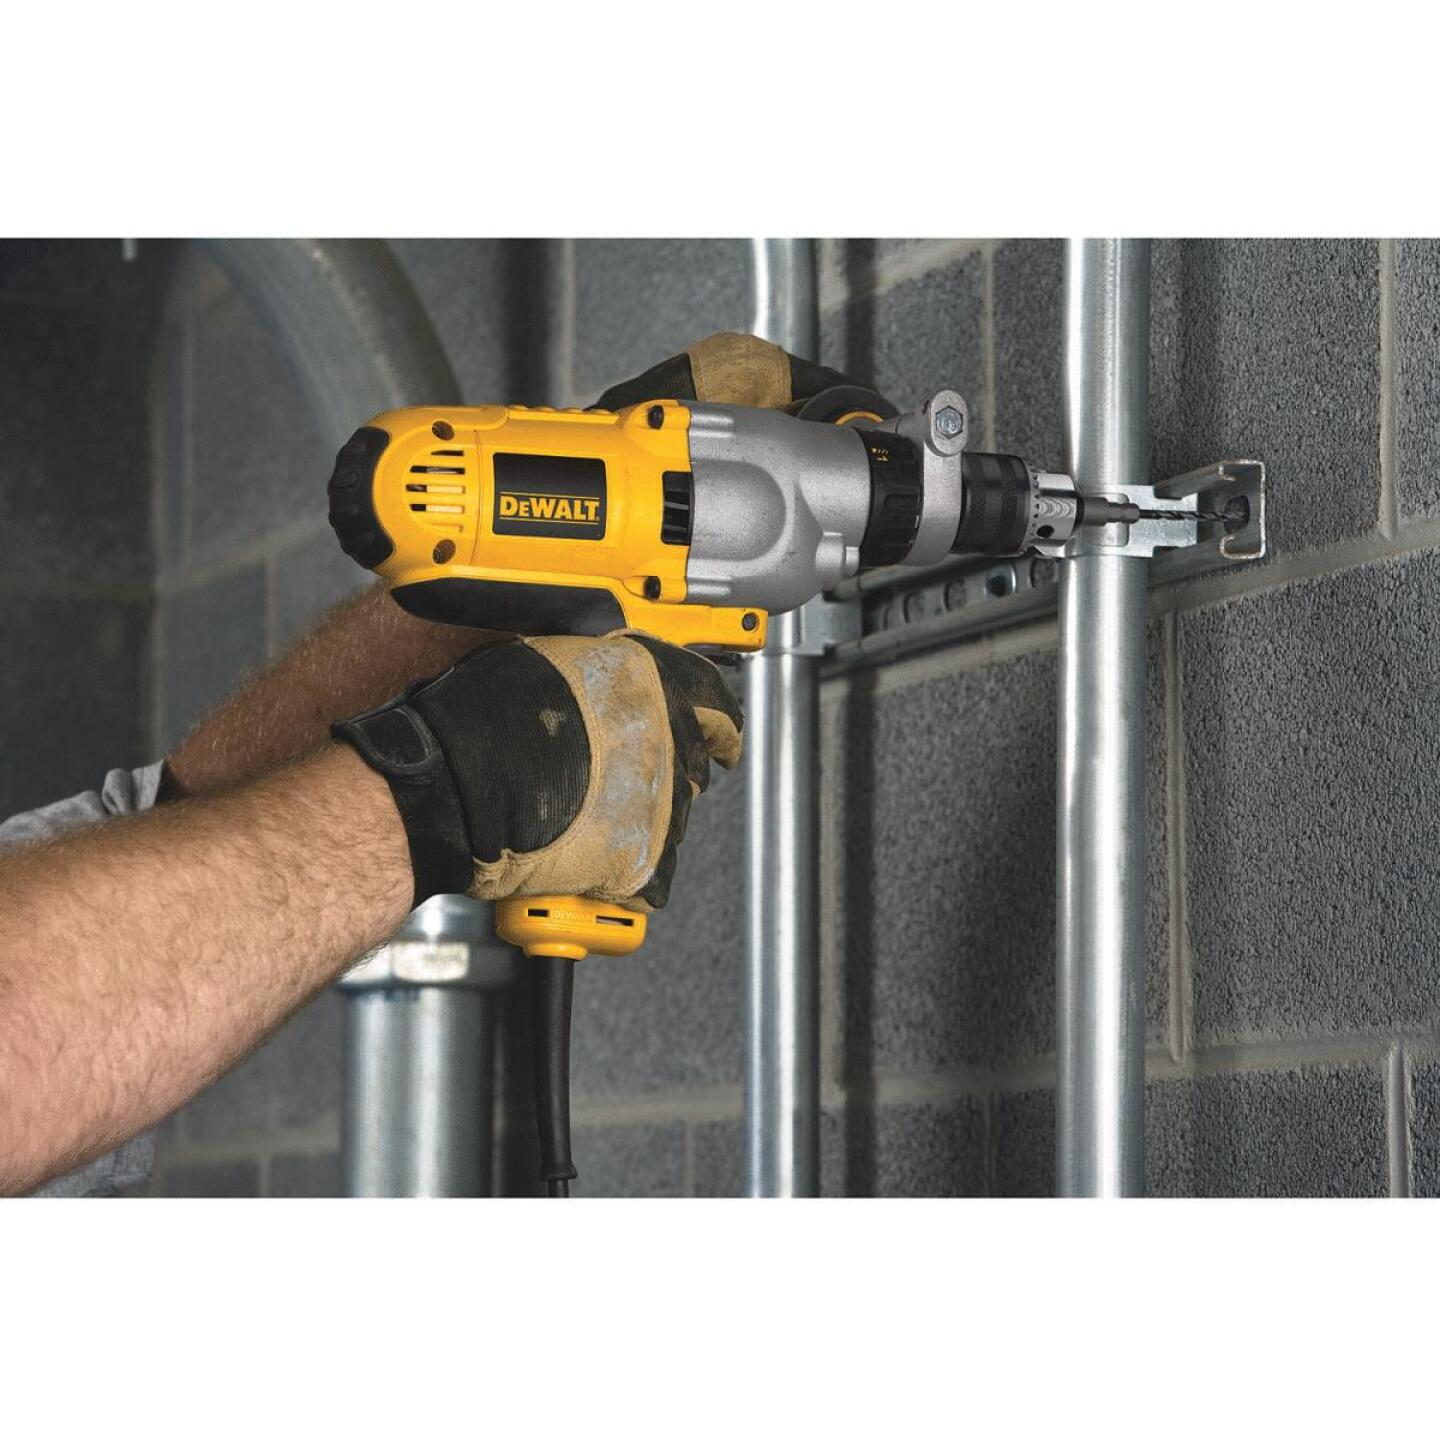 DeWalt 1/2 In. Keyed 10.0-Amp VSR Mid-Handle Grip Electric Hammer Drill Image 3